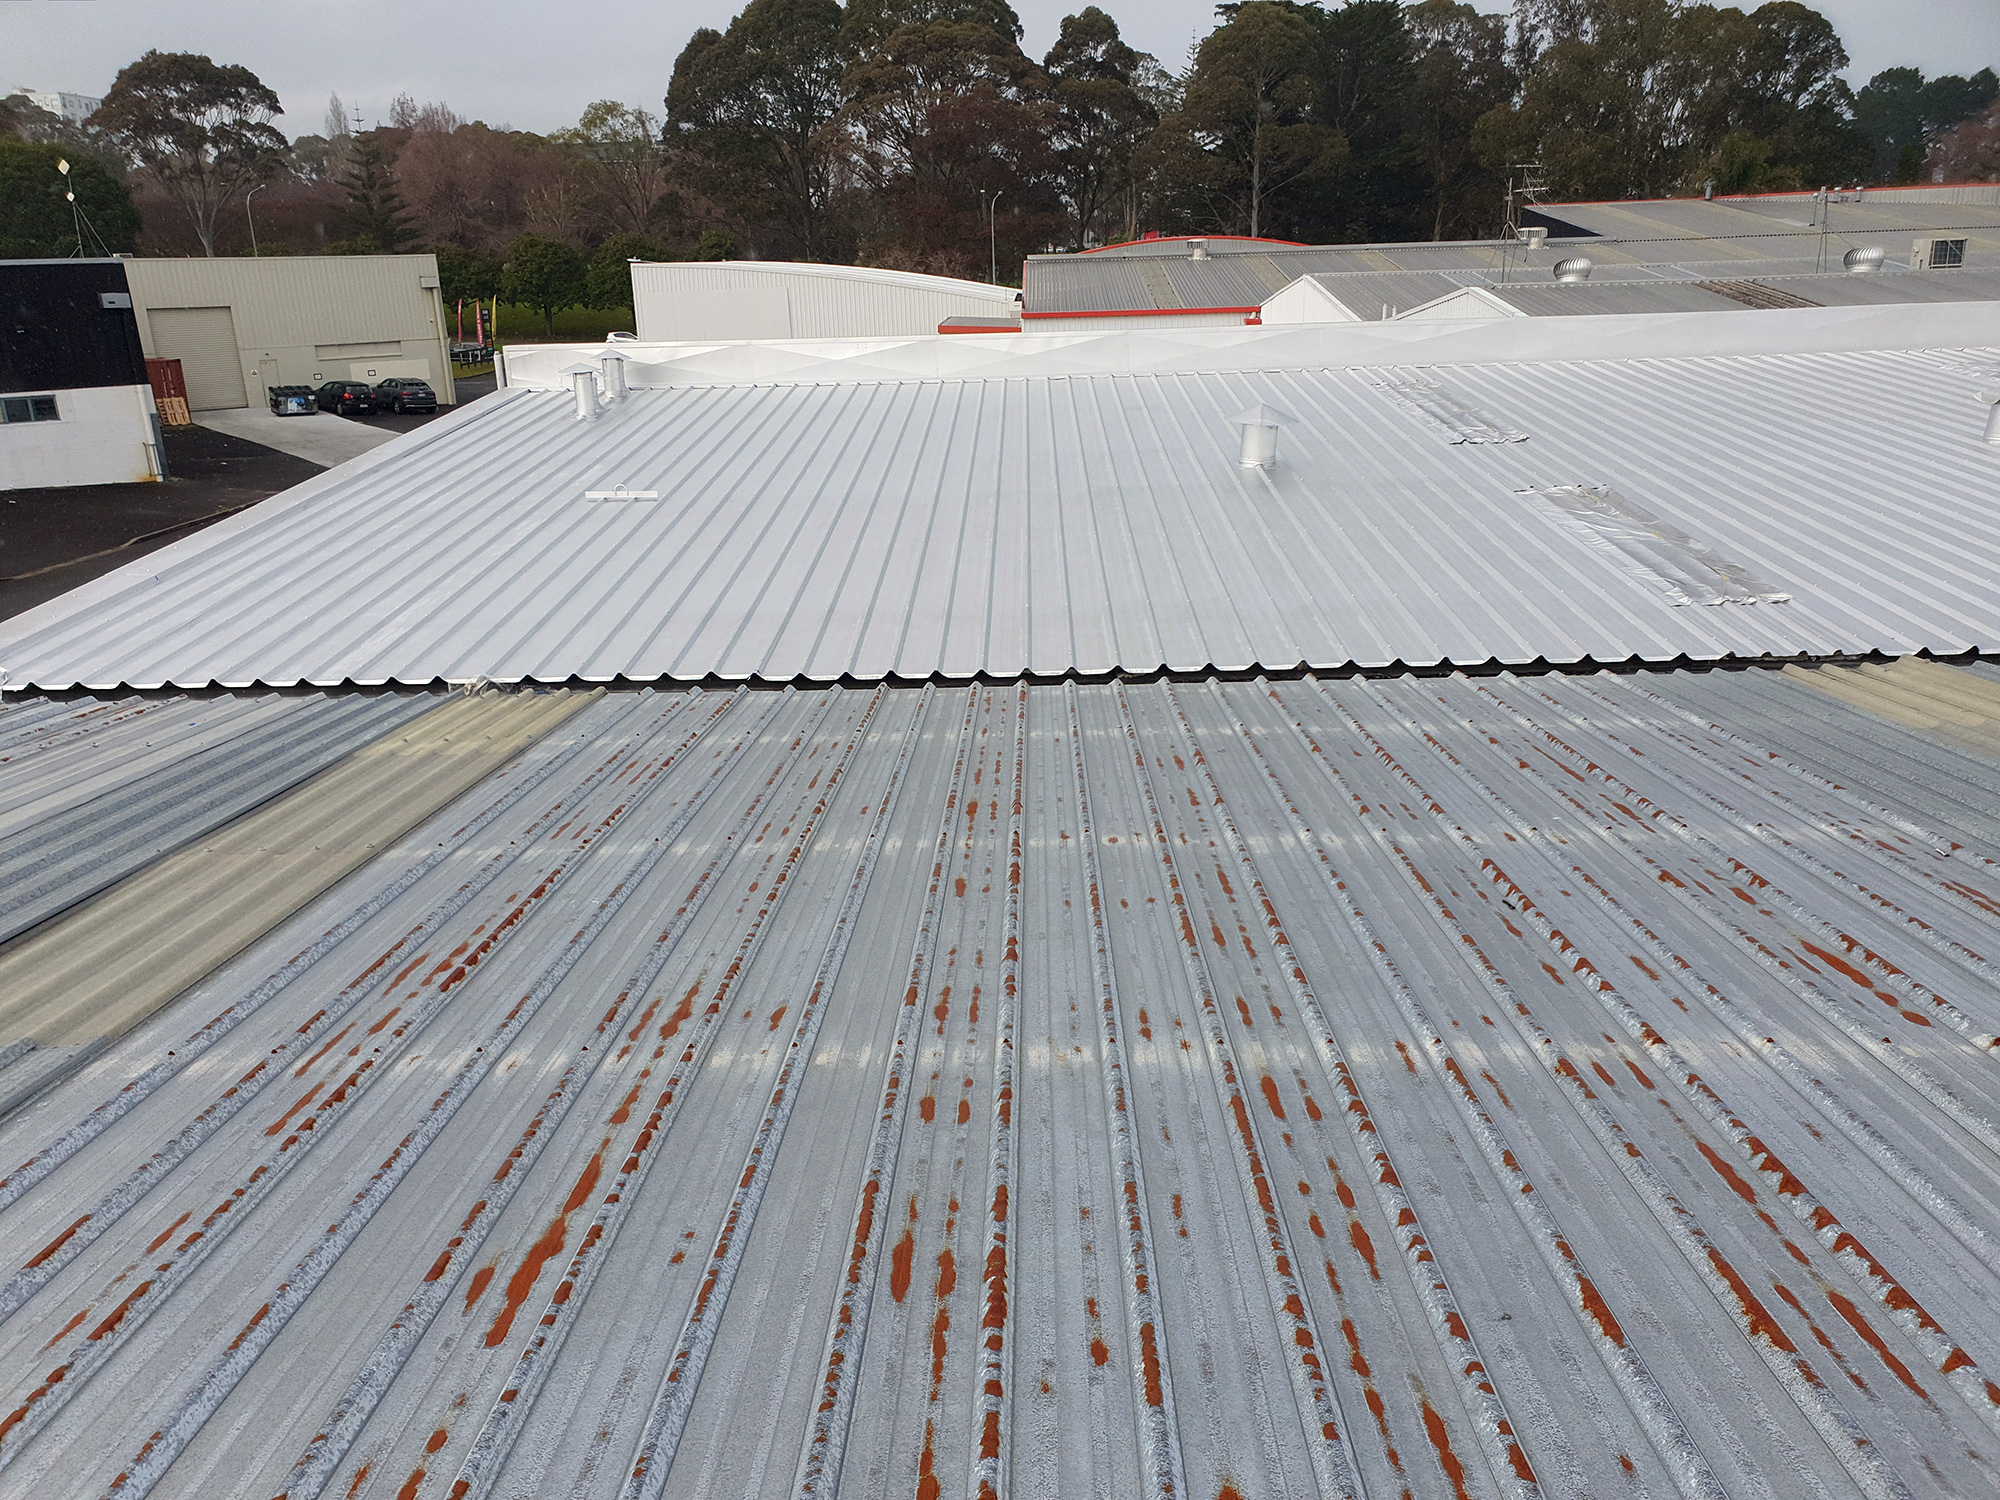 Rusty commercial roof from neighbour - Home